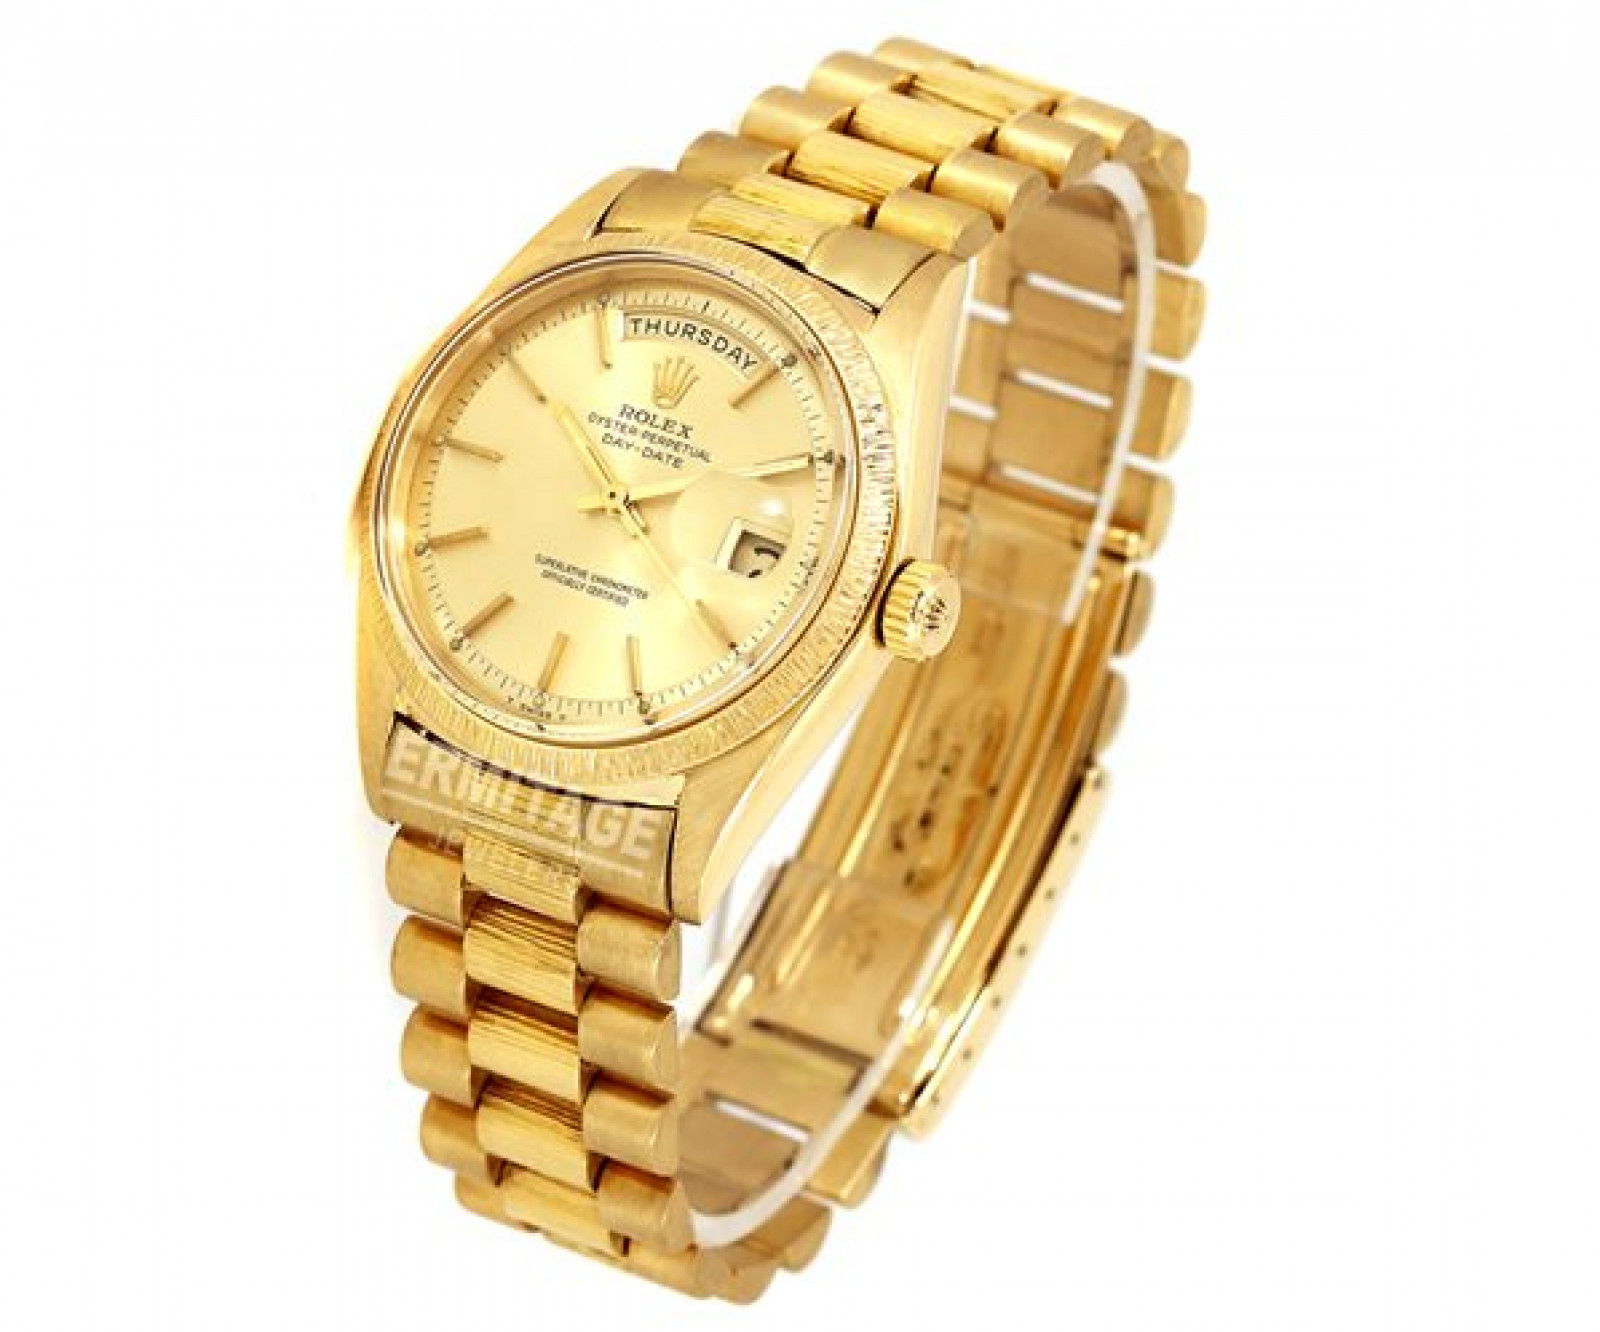 Vintage Rolex Day-Date 1807 Gold Year 1962 1962 with Champagne Dial